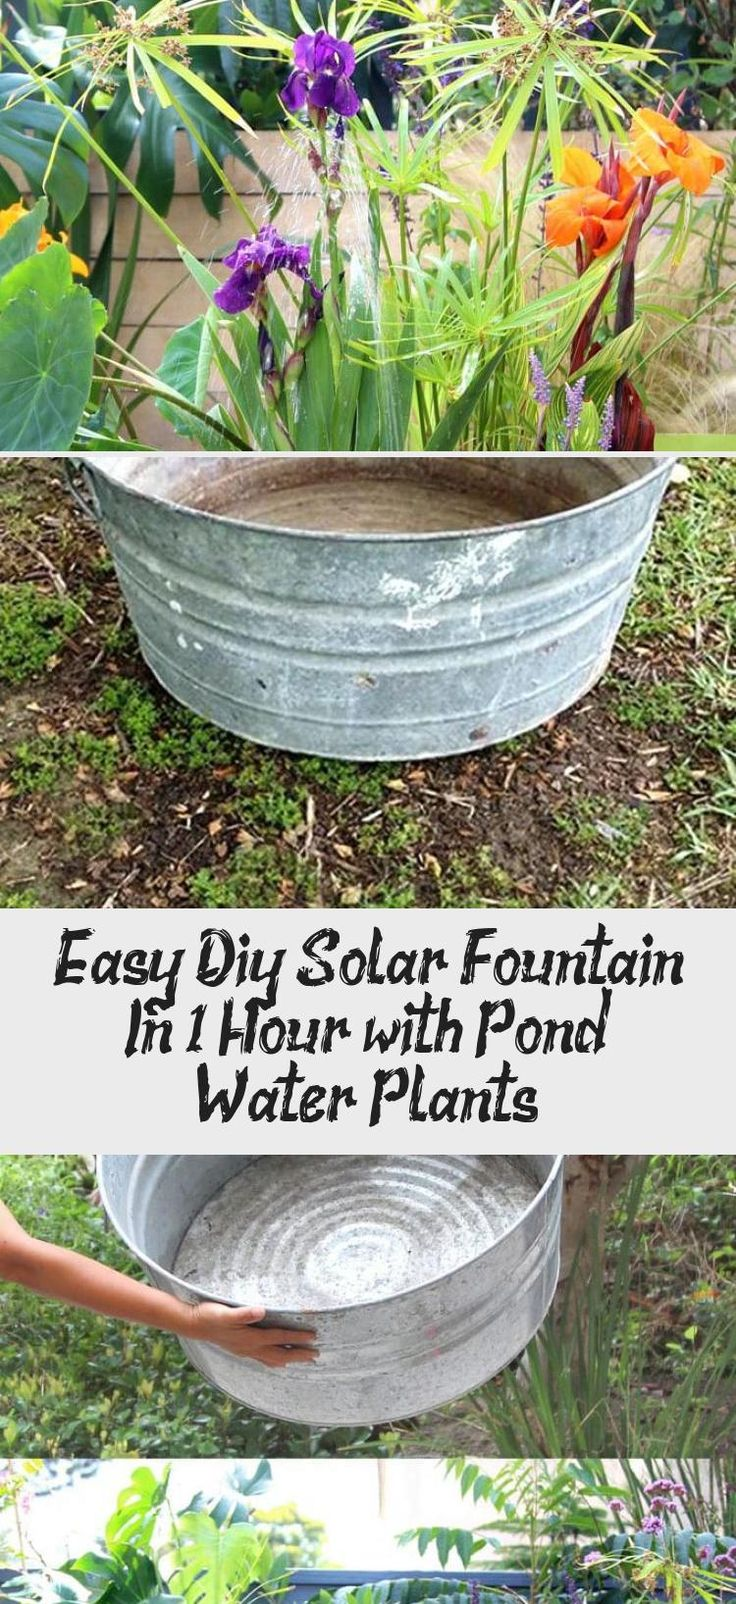 Easy diy solar fountain in 1 hour with pond water plants